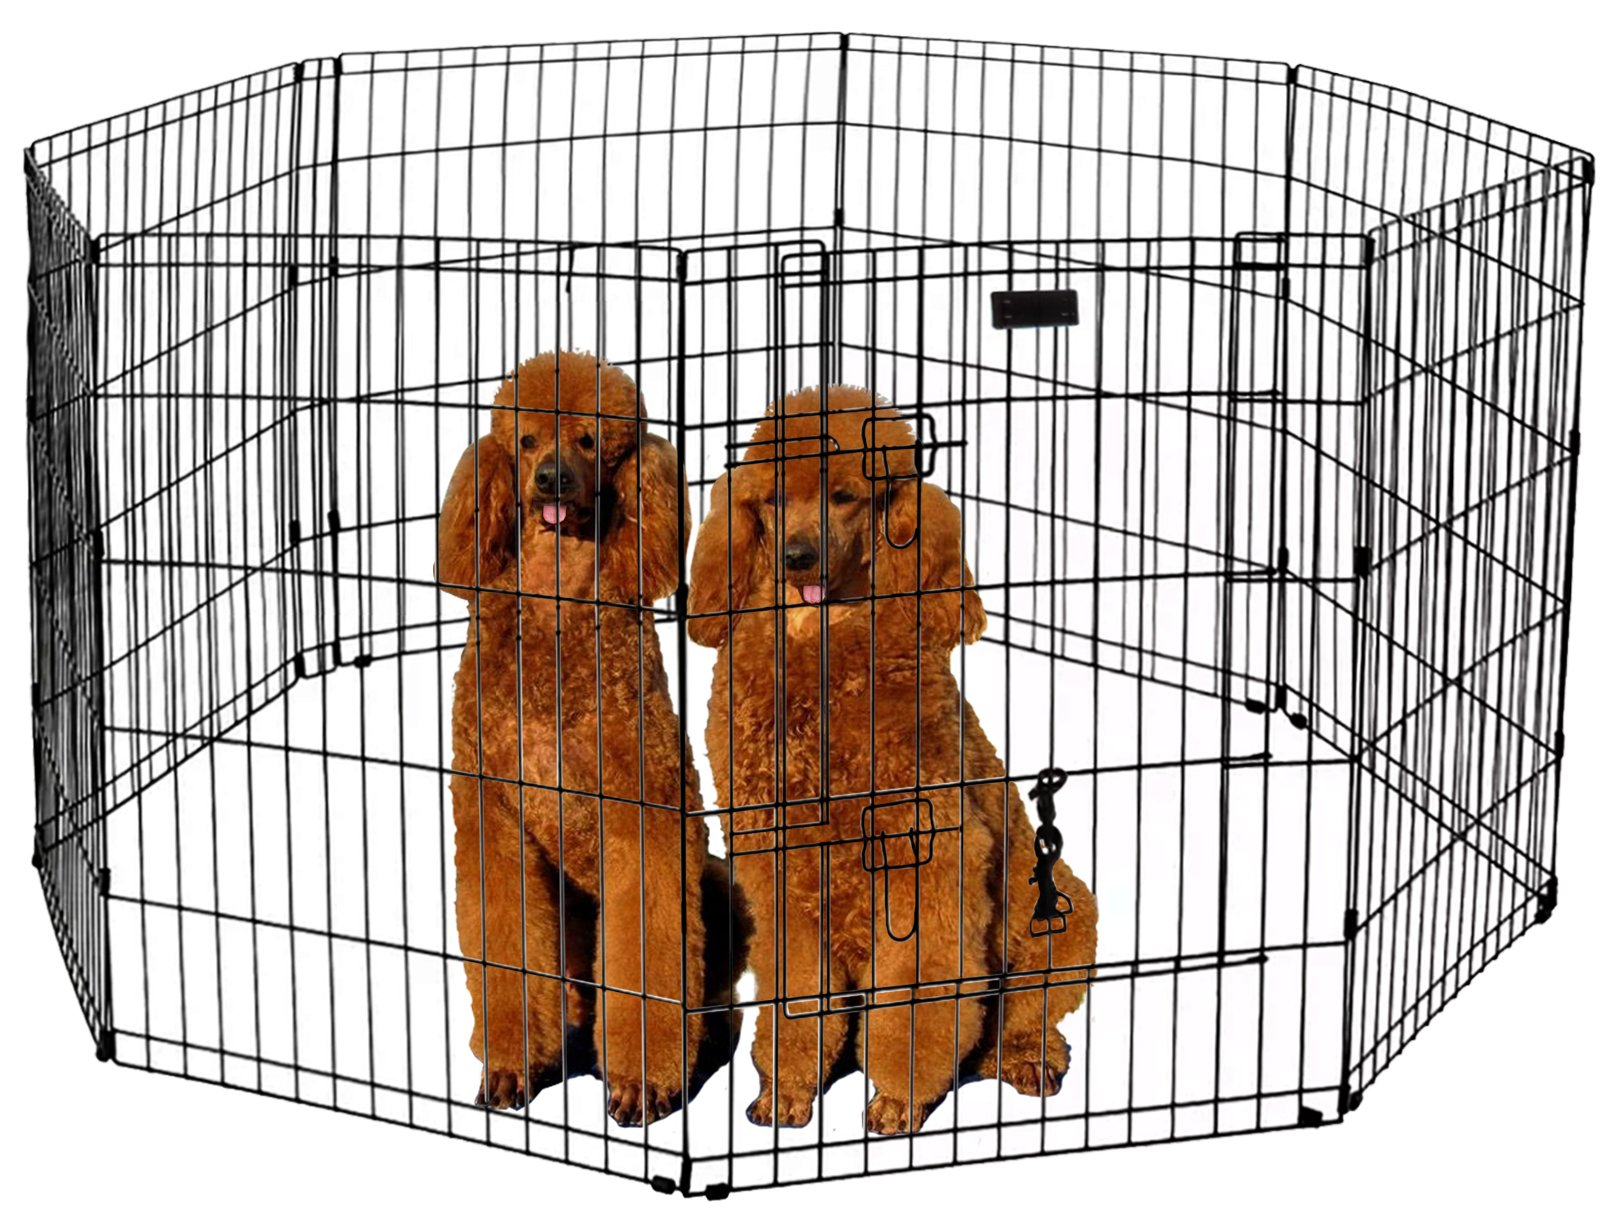 Ultimate Folding Dog Animal Pet Playpen Wire Metal 8 Panel Octagon Black Wire Enclosure Fence Exercise Popup Kennel Crate Tent Portable Gate Cage(XX-Large 48'') by LavoHome (Image #2)